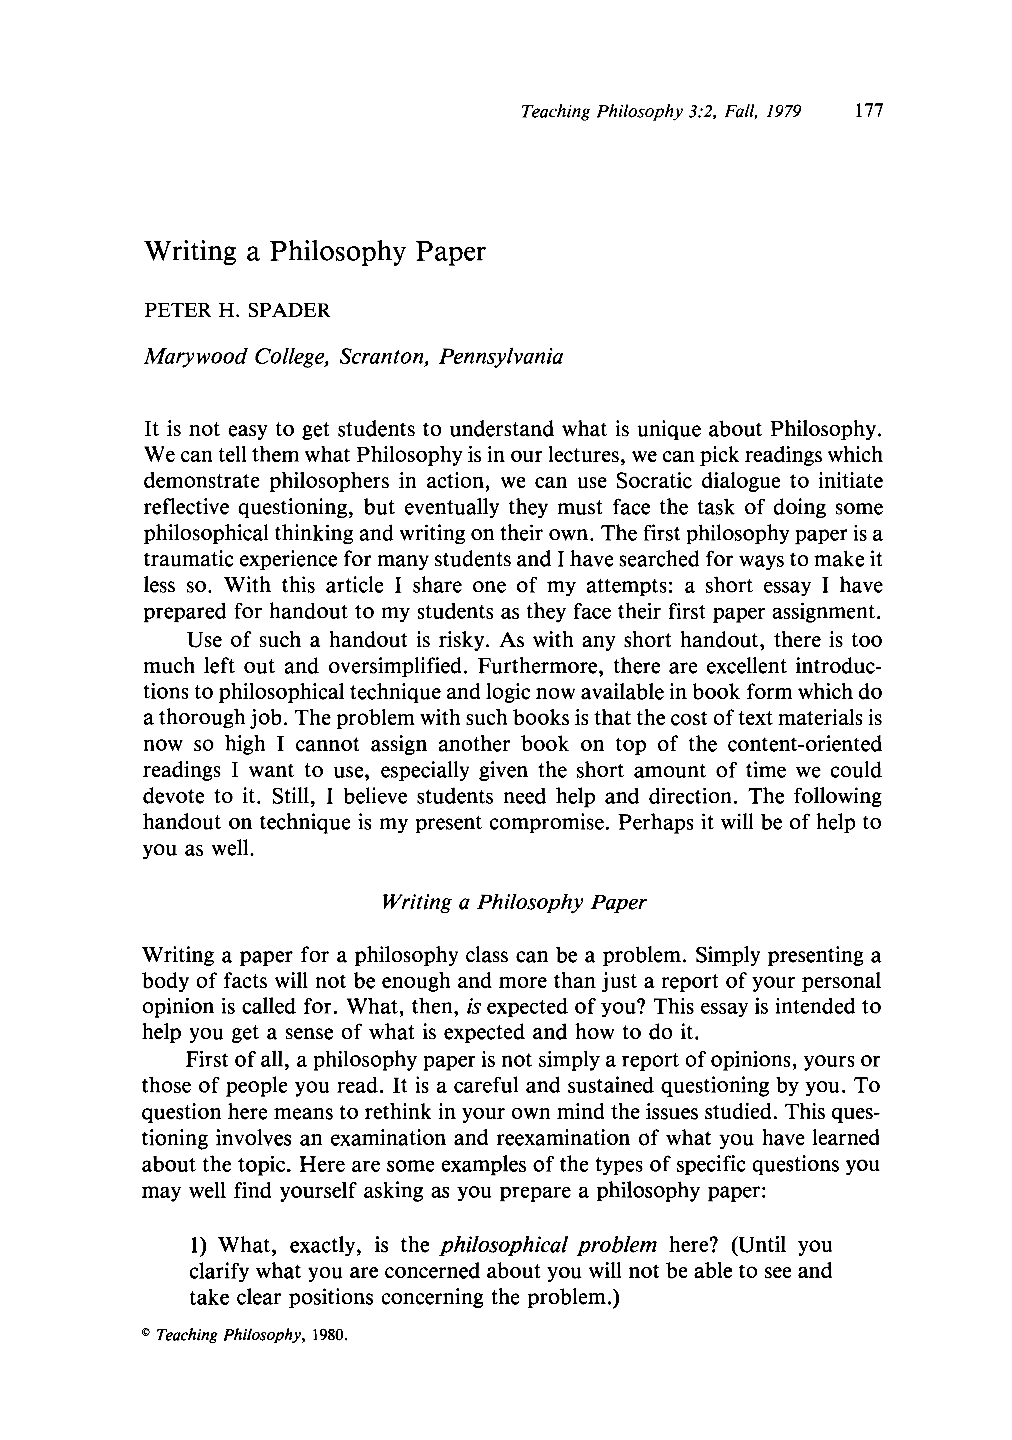 Philosophy research papers